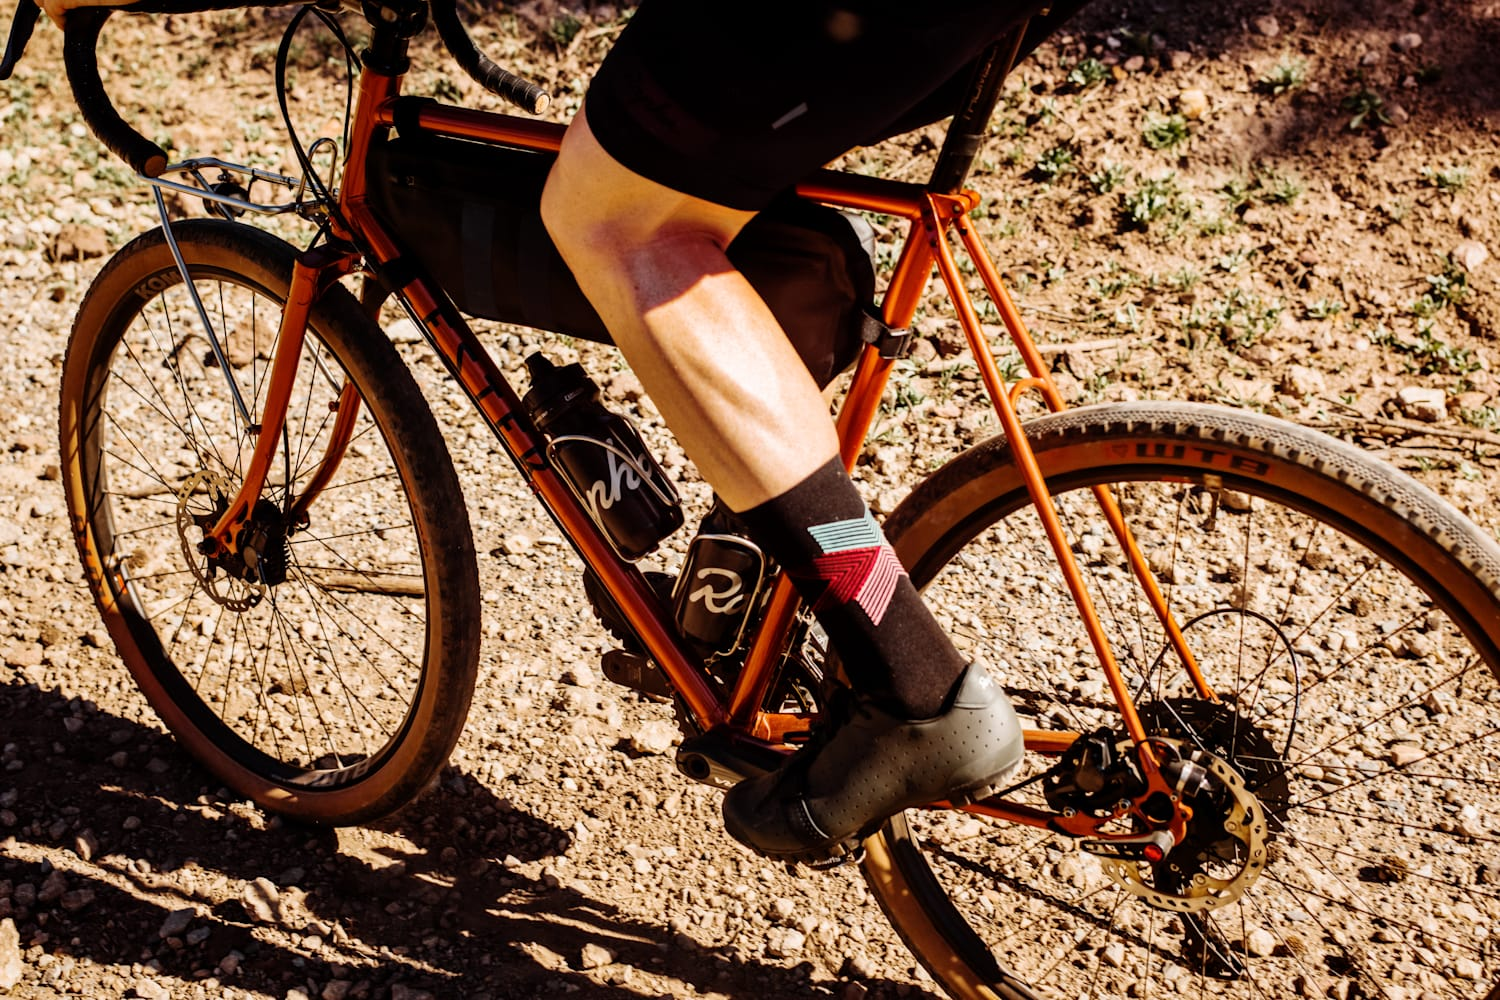 Best gravel bike shoes 2020: Top 10 for any adventure